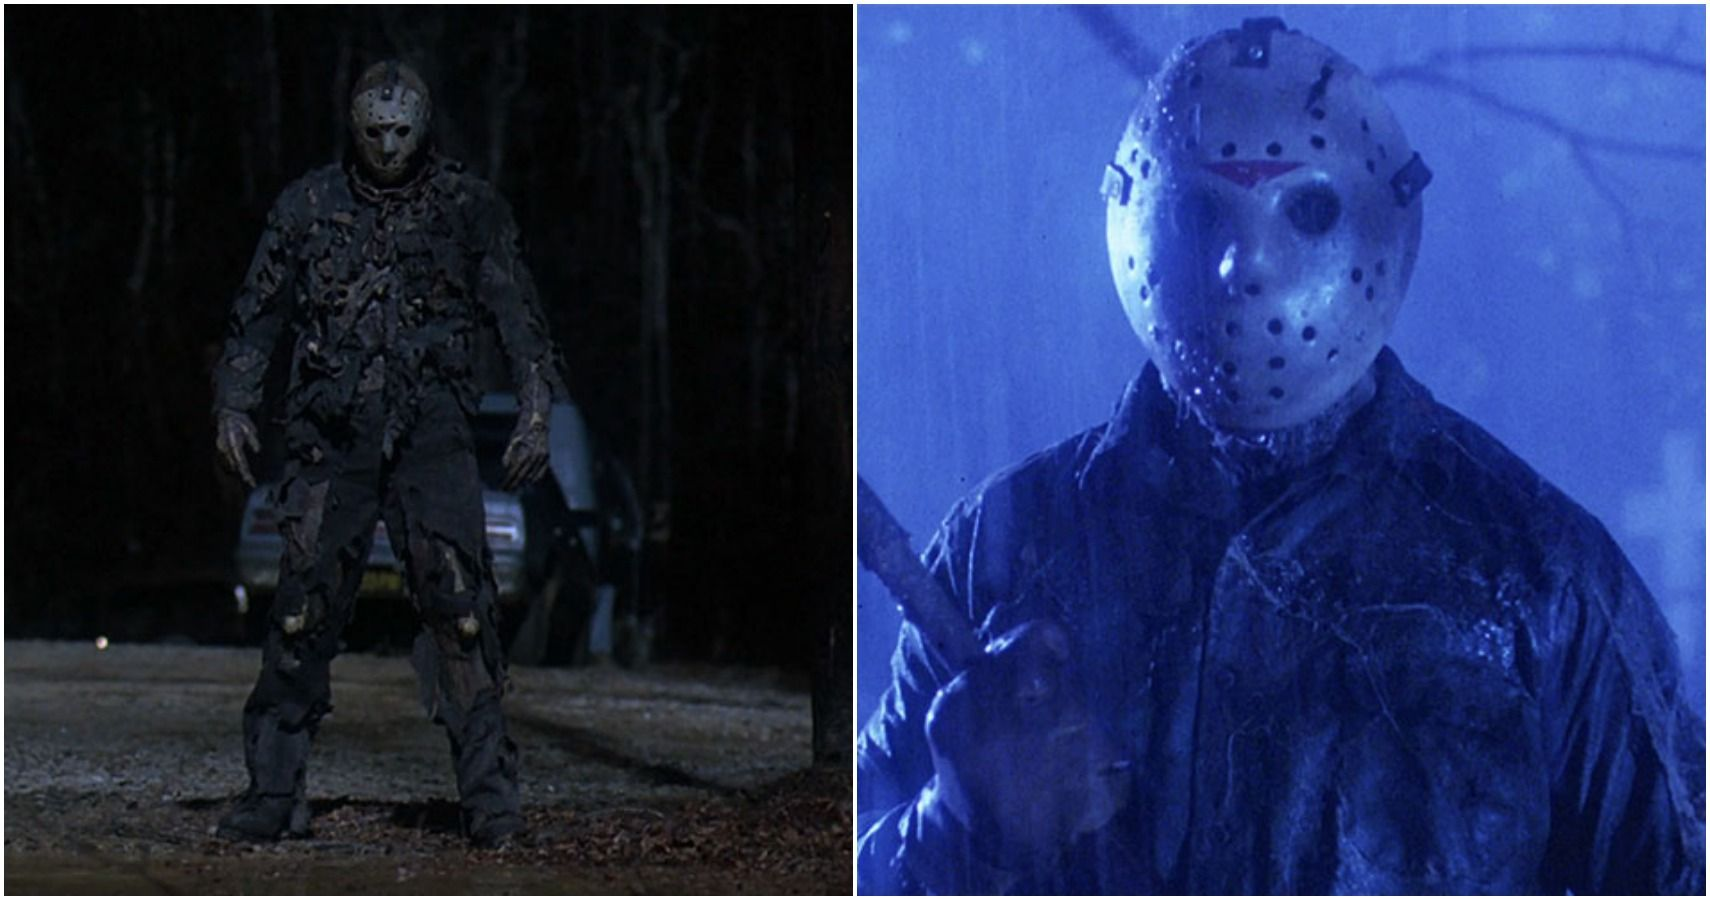 Friday The 13th: 10 Ways Jason Voorhees Changed Over The Course Of The Franchise